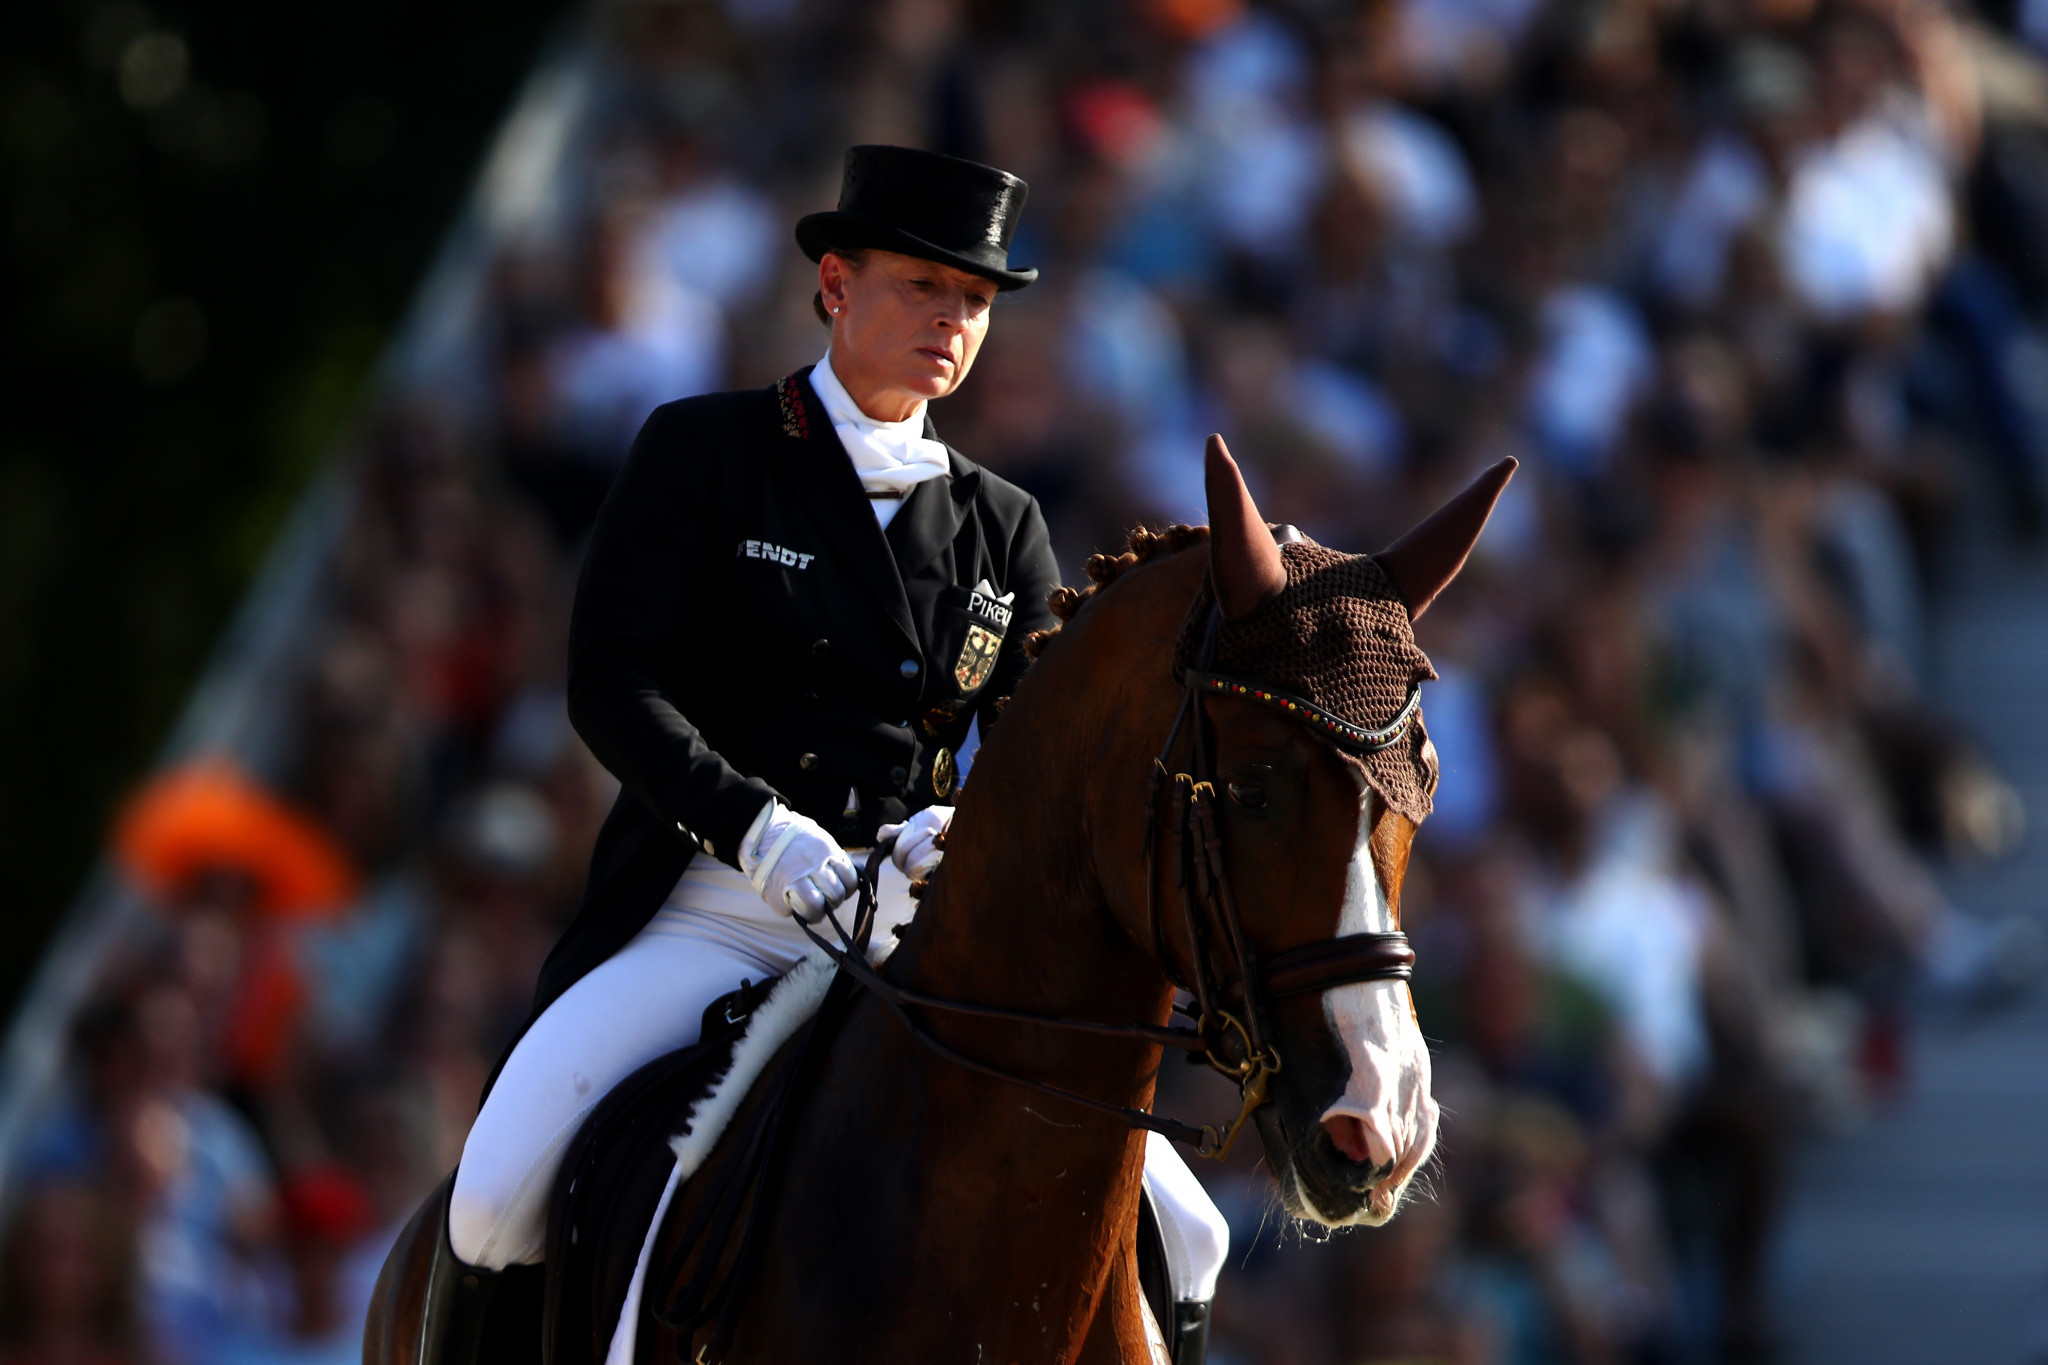 Six-time Olympic champion Werth elected Club of International Dressage Riders chair